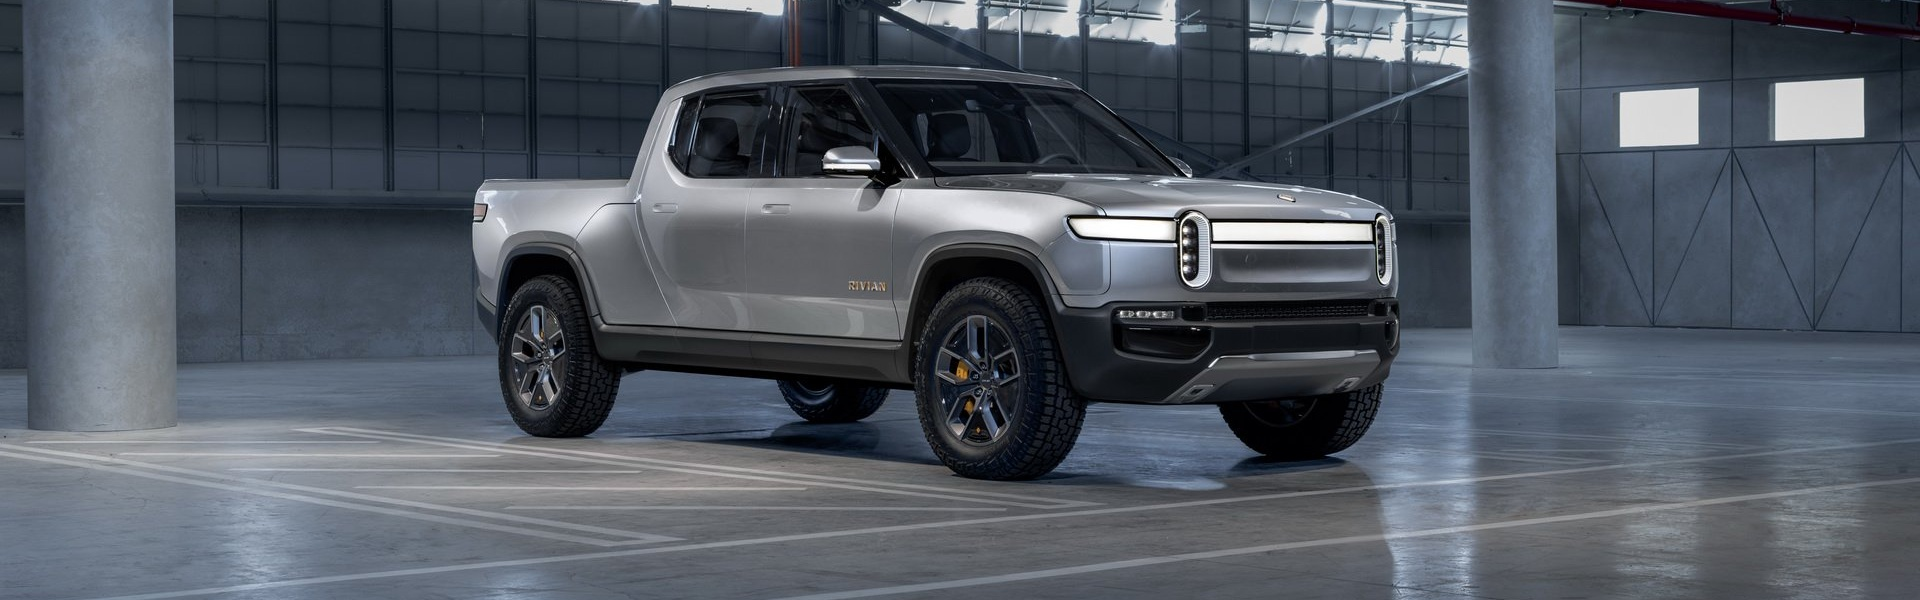 rivian-unveils-r1t-electric-truck-1.jpg